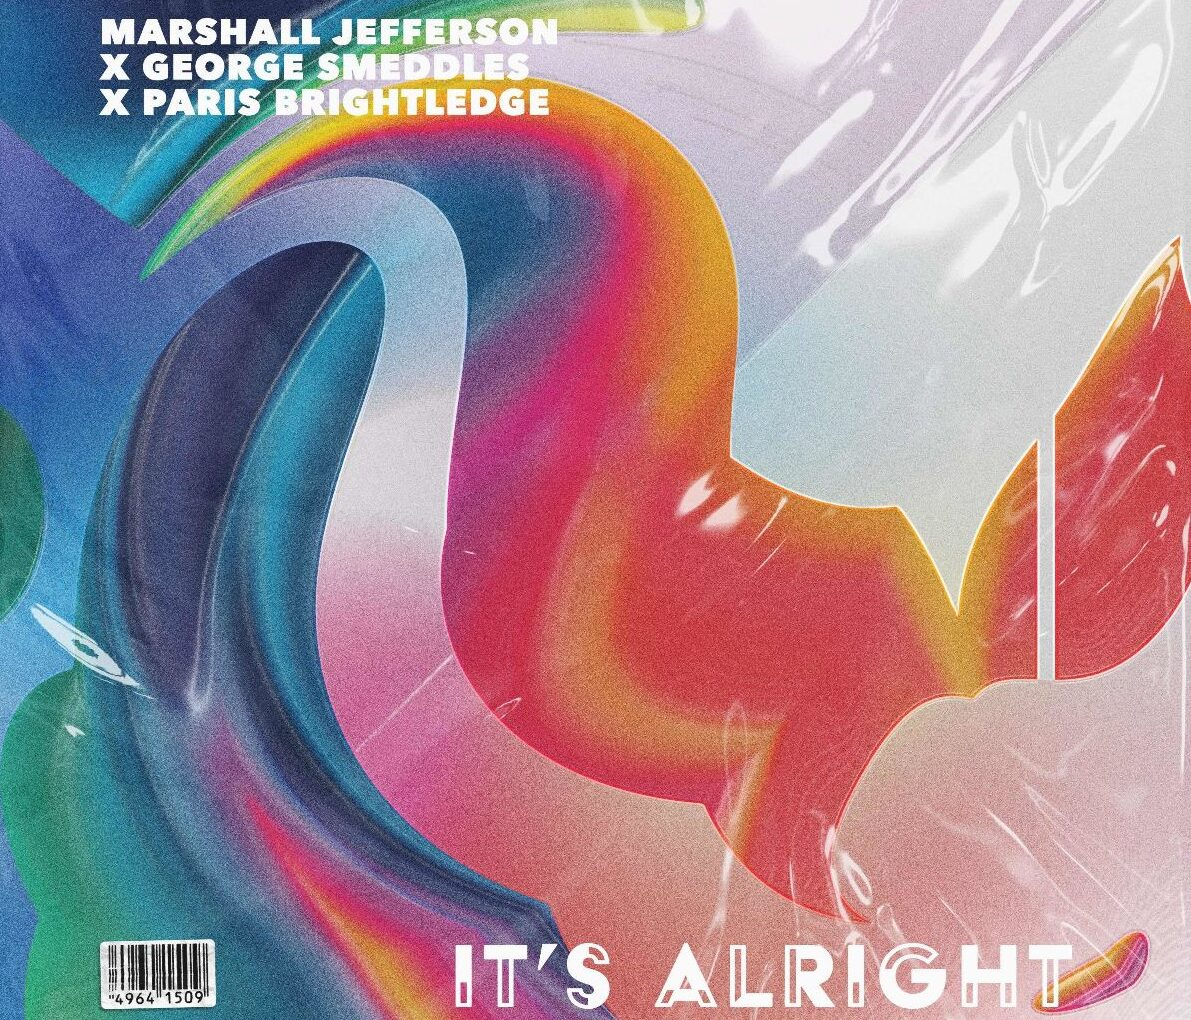 'It's Alright' by Marshall Jefferson, George Smeddles and Paris Brightledge!